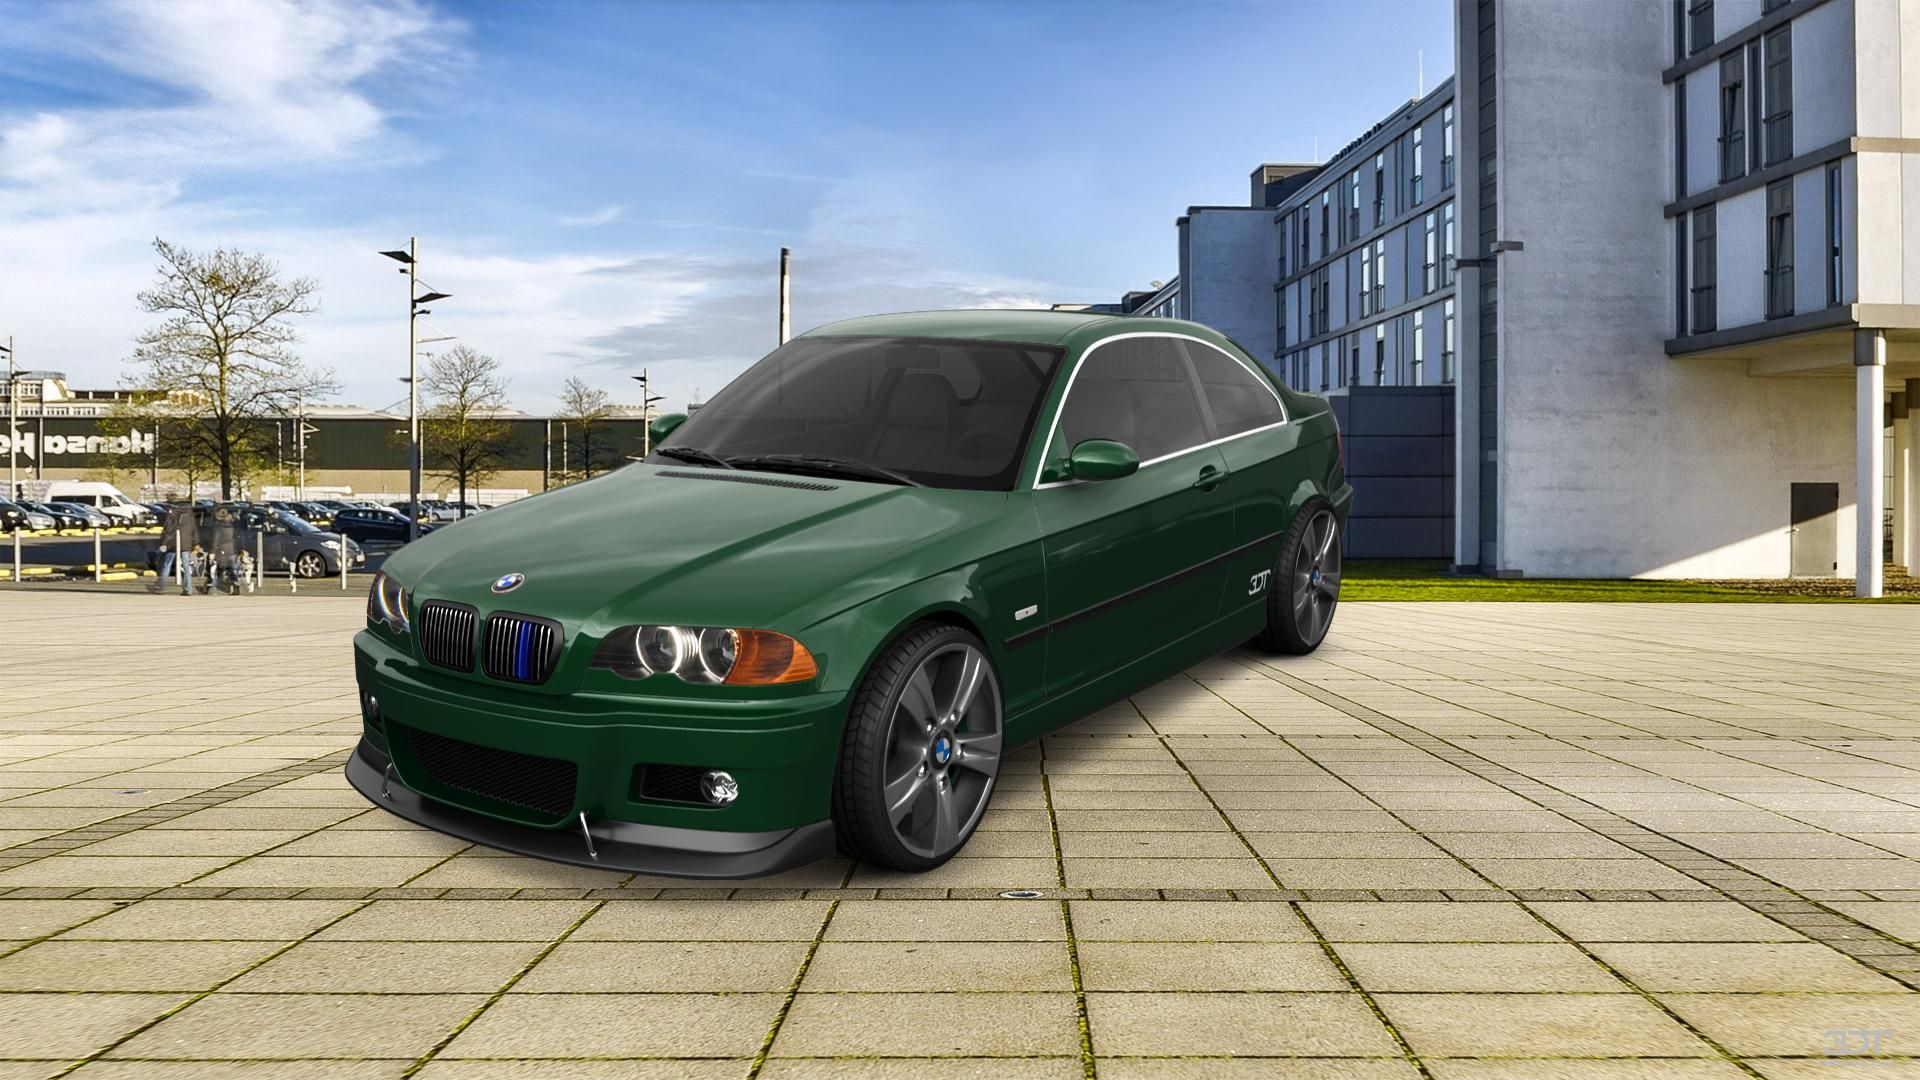 Checkout my tuning BMW 3Series 2001 at 3DTuning 3dtuning